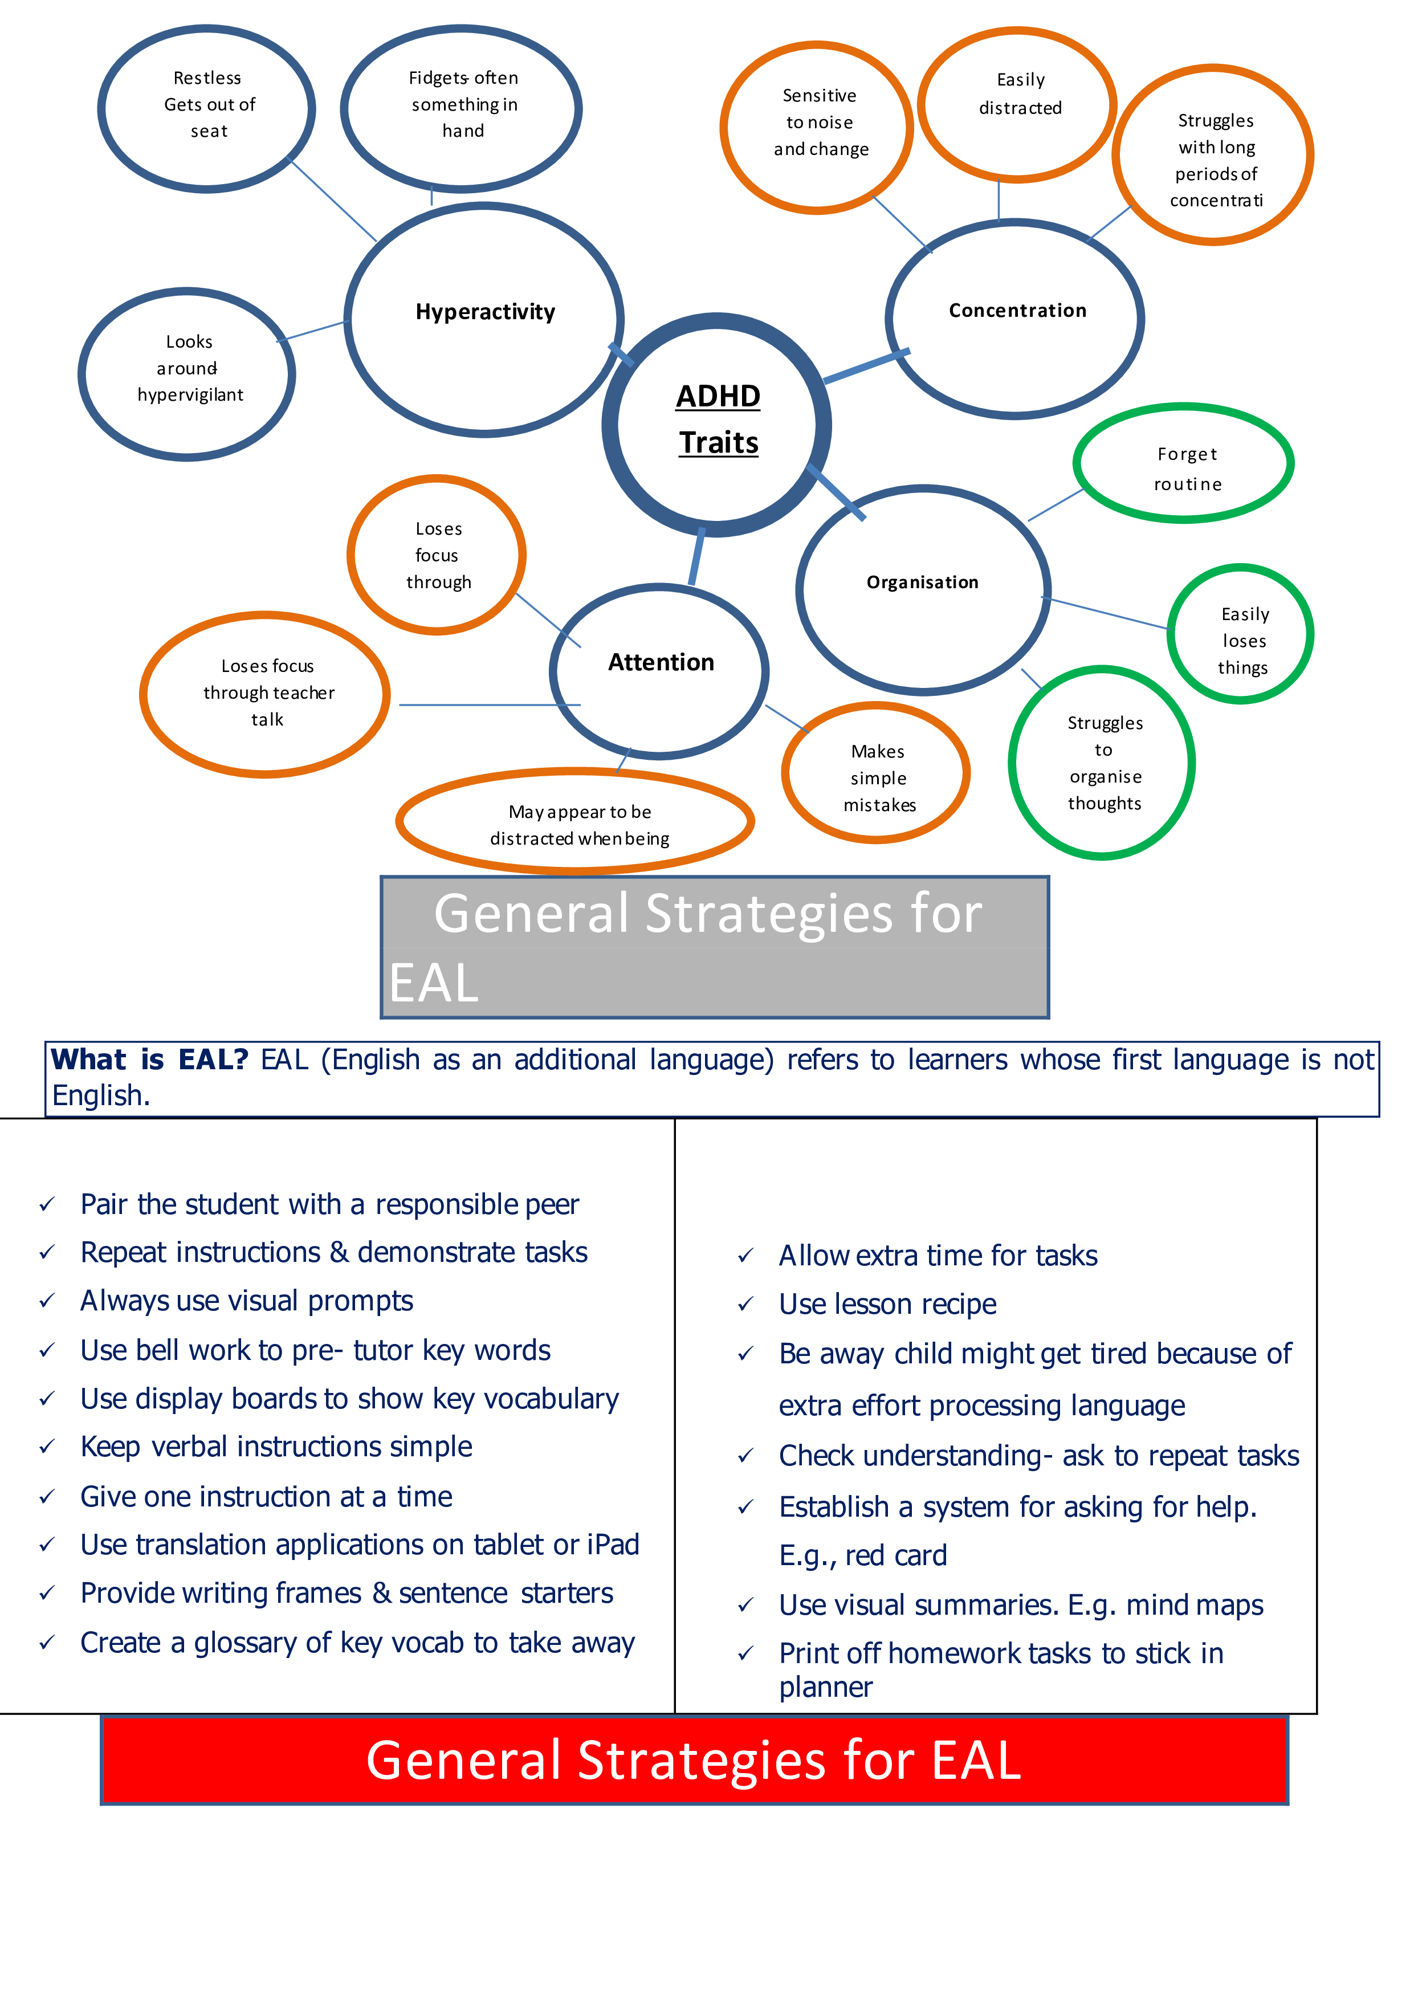 Guide to supporting pupils BPS 0006